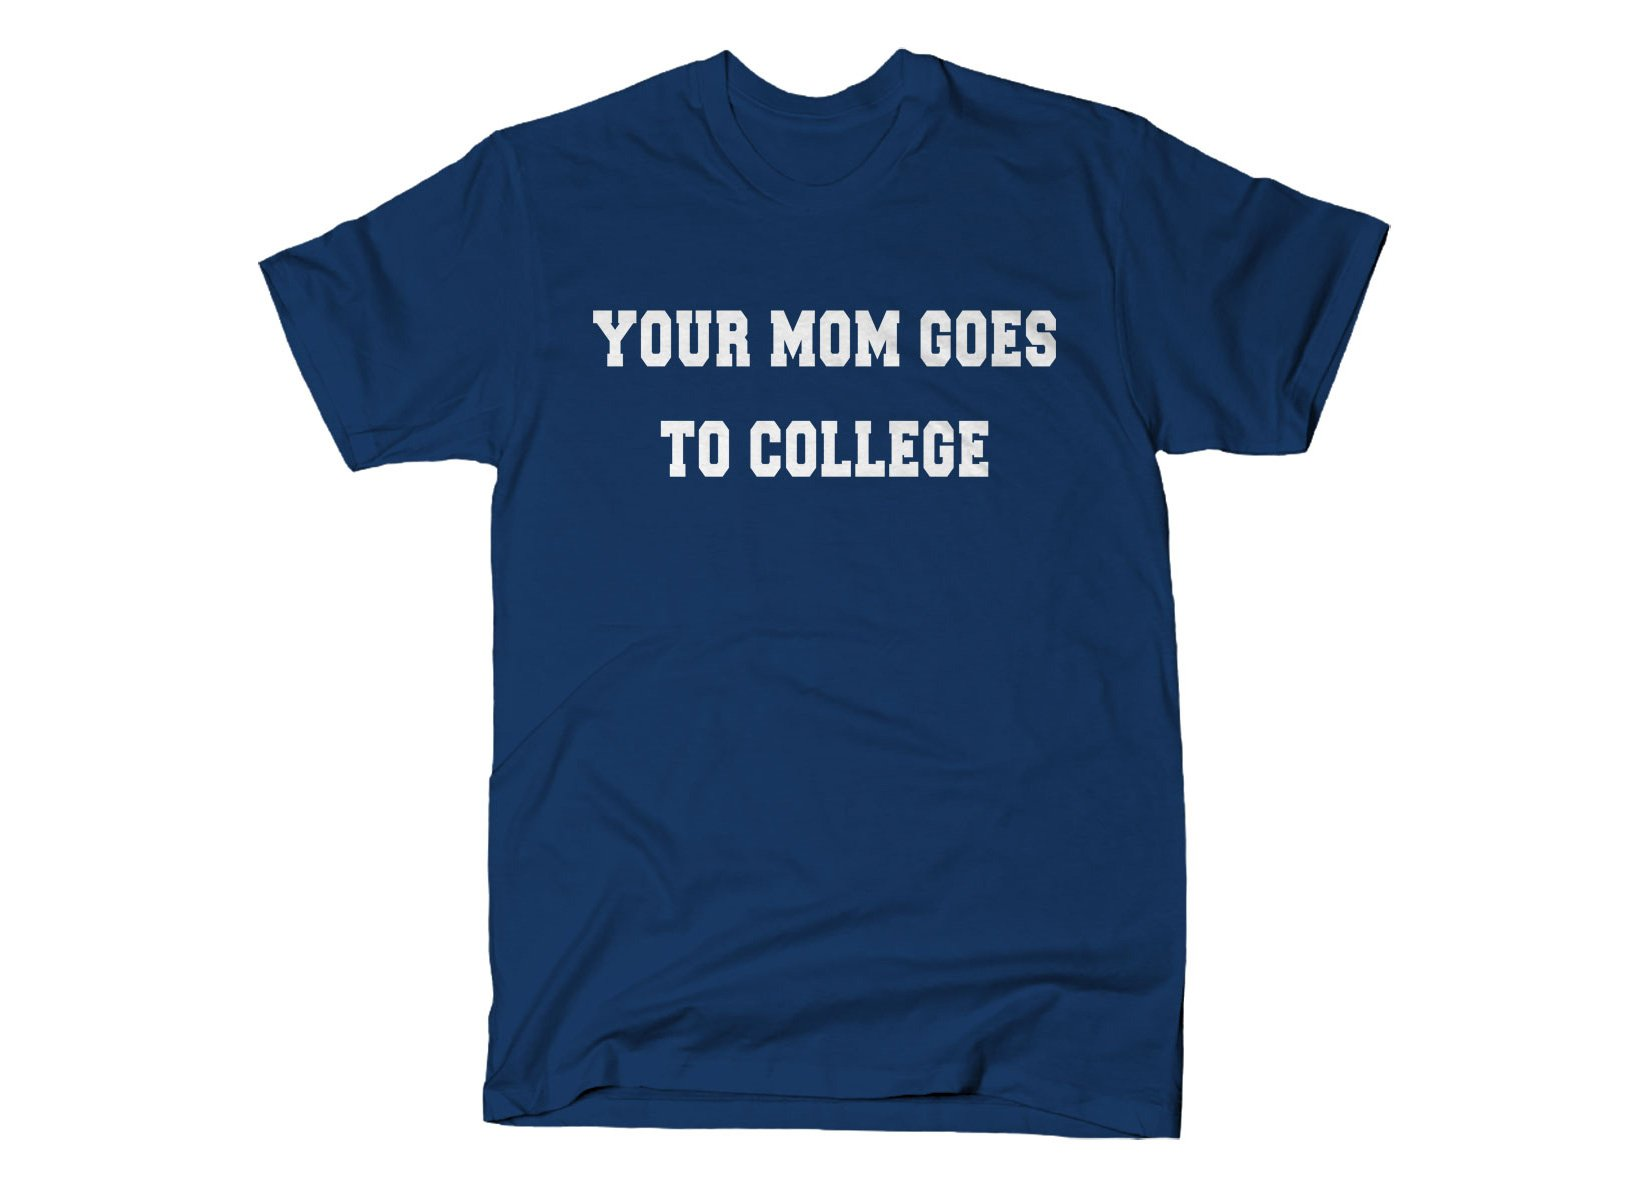 Your Mom Goes To College on Mens T-Shirt